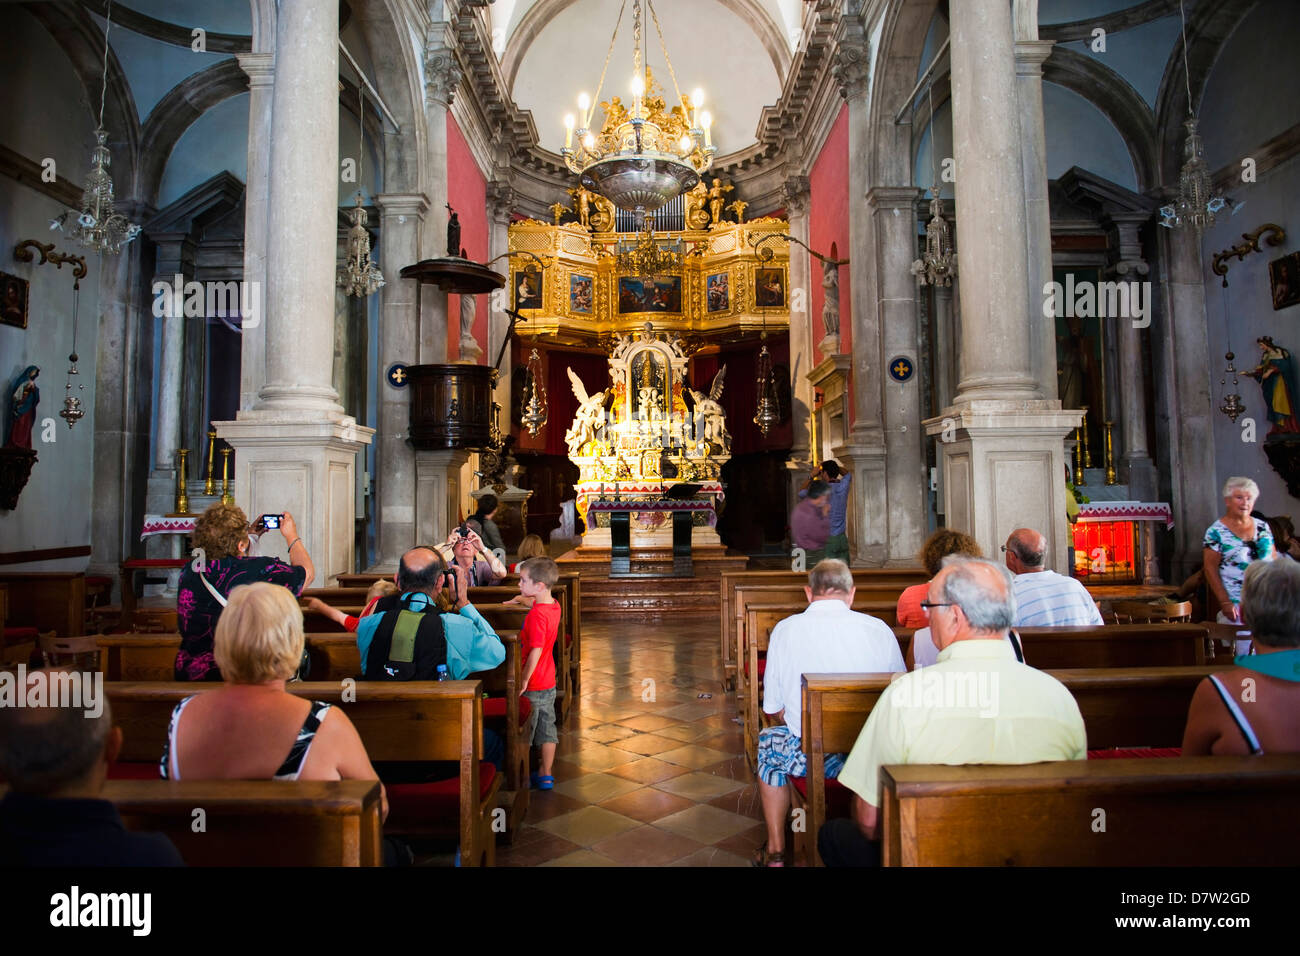 Tourists inside the Church of St. Blaise, Dubrovnik Old Town, UNESCO World Heritage Site, Dubrovnik, Croatia - Stock Image